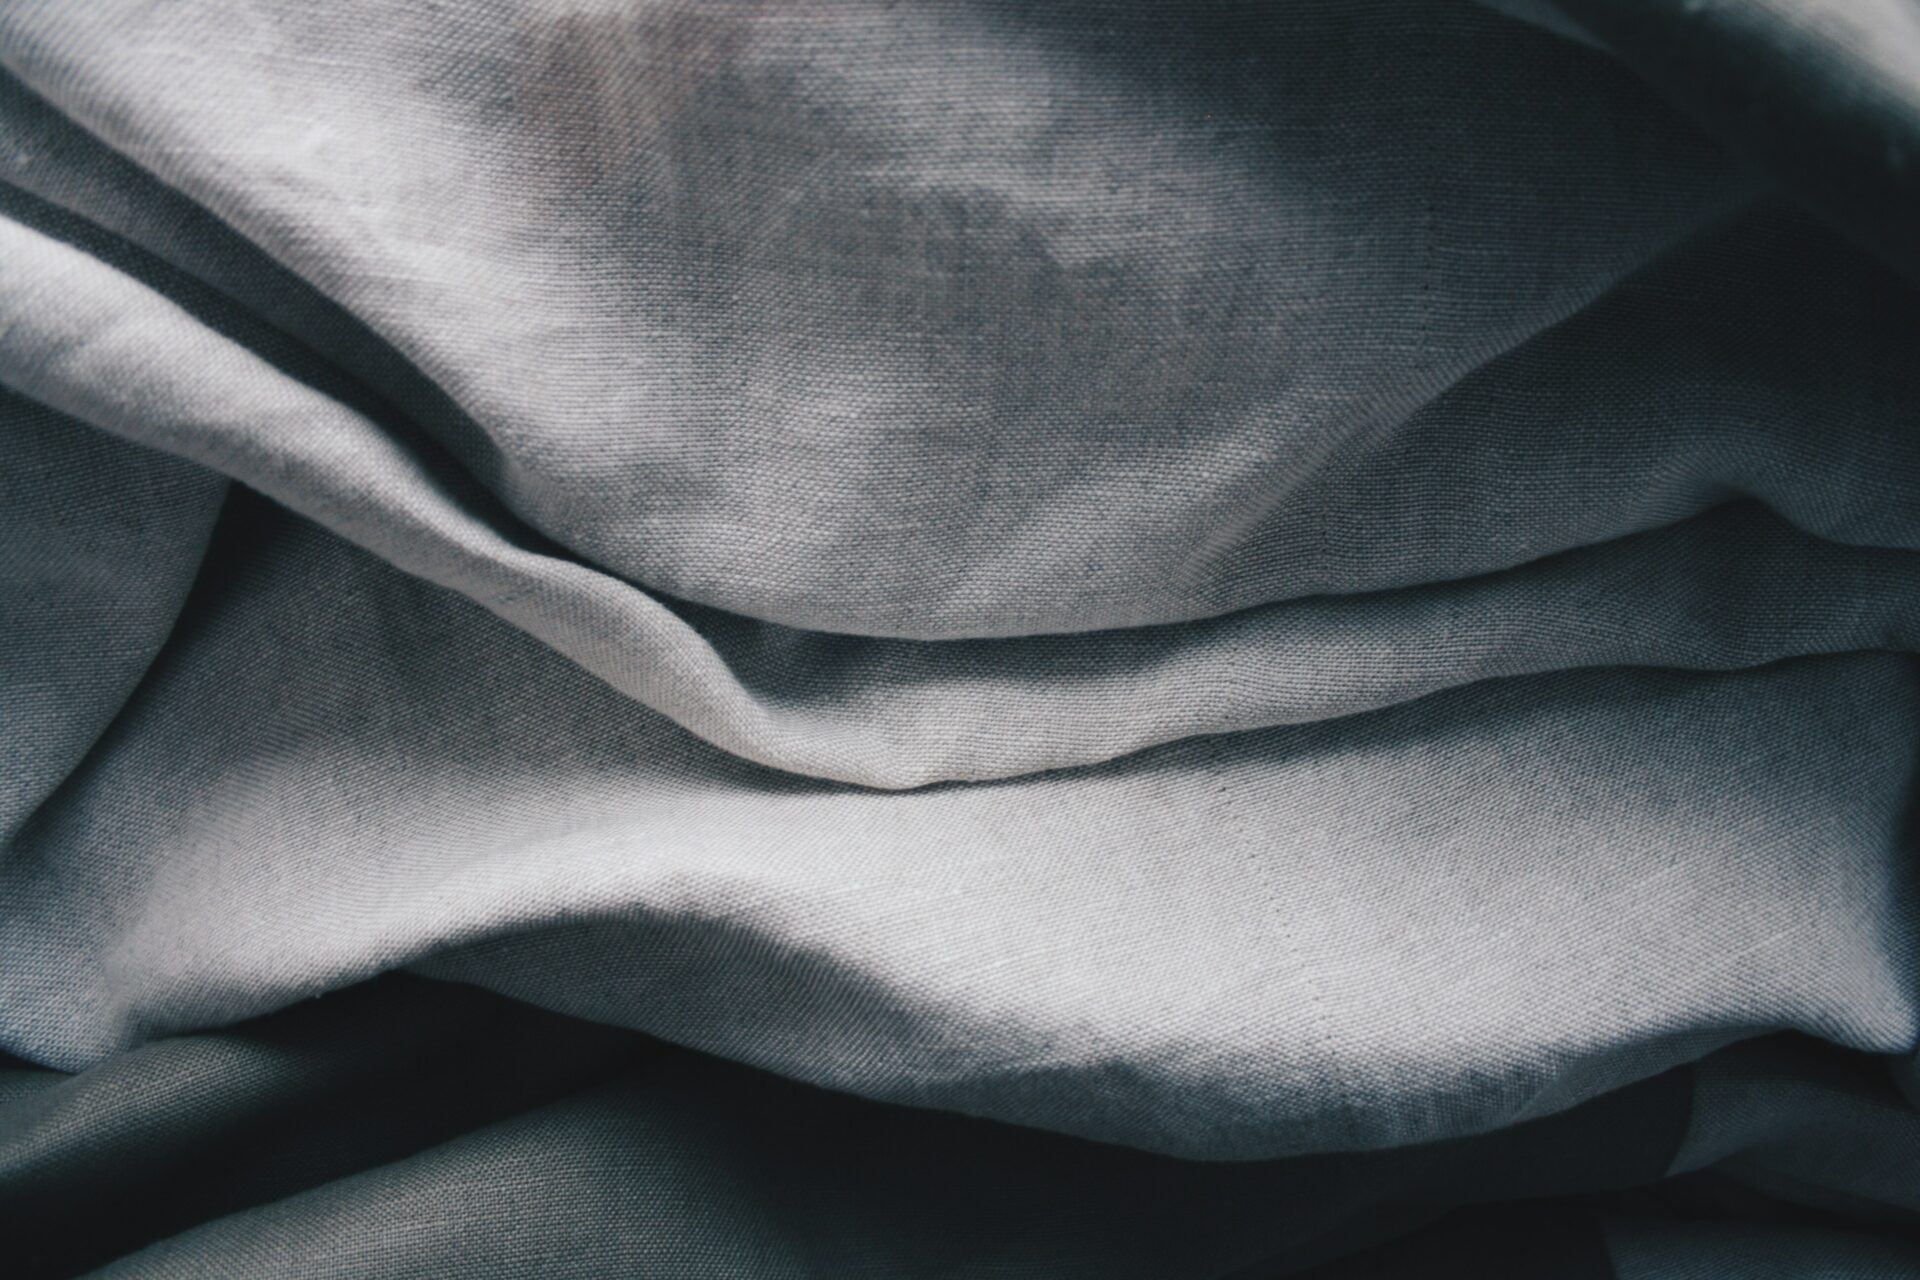 19 Sustainable Fabrics For A Conscious Closet